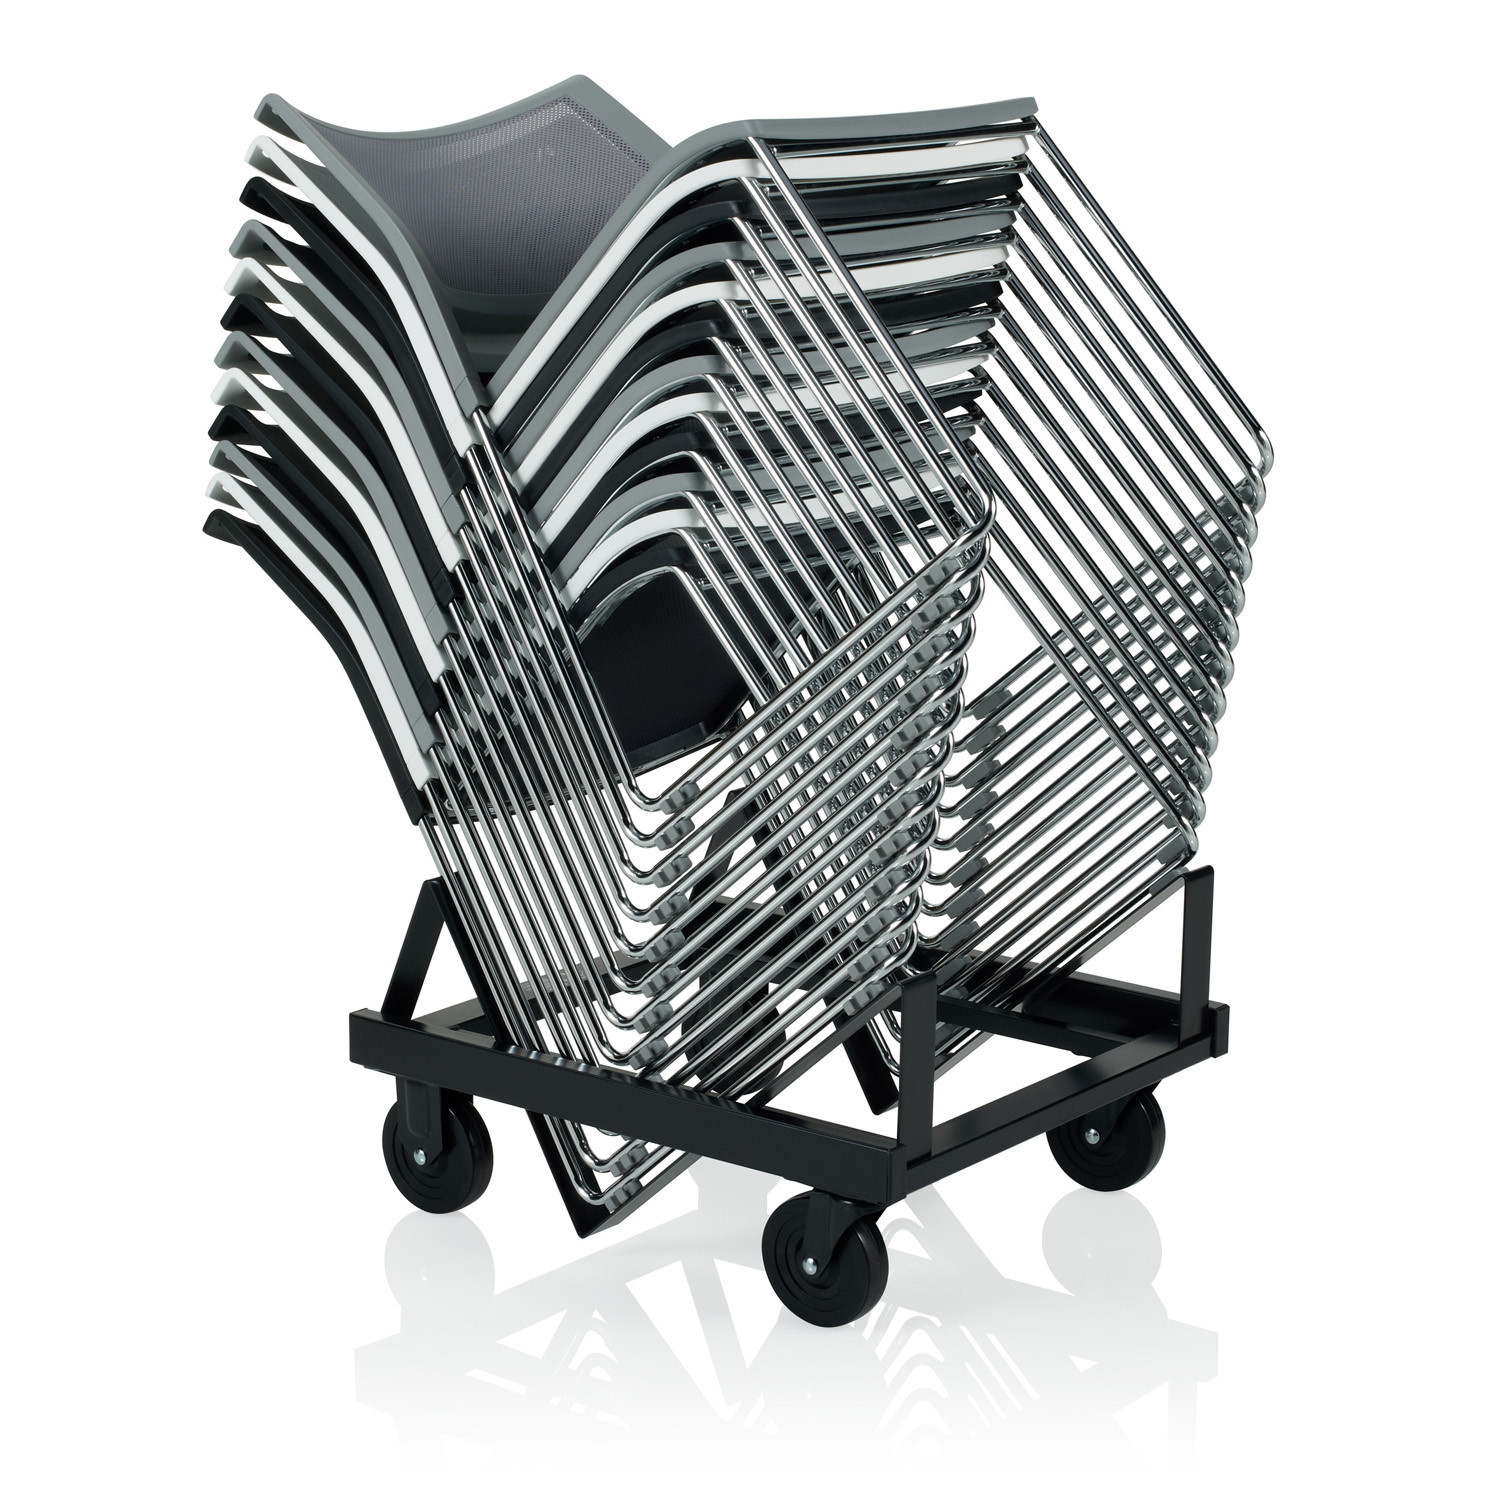 Opt4 High Density Stacking Chairs with trolley